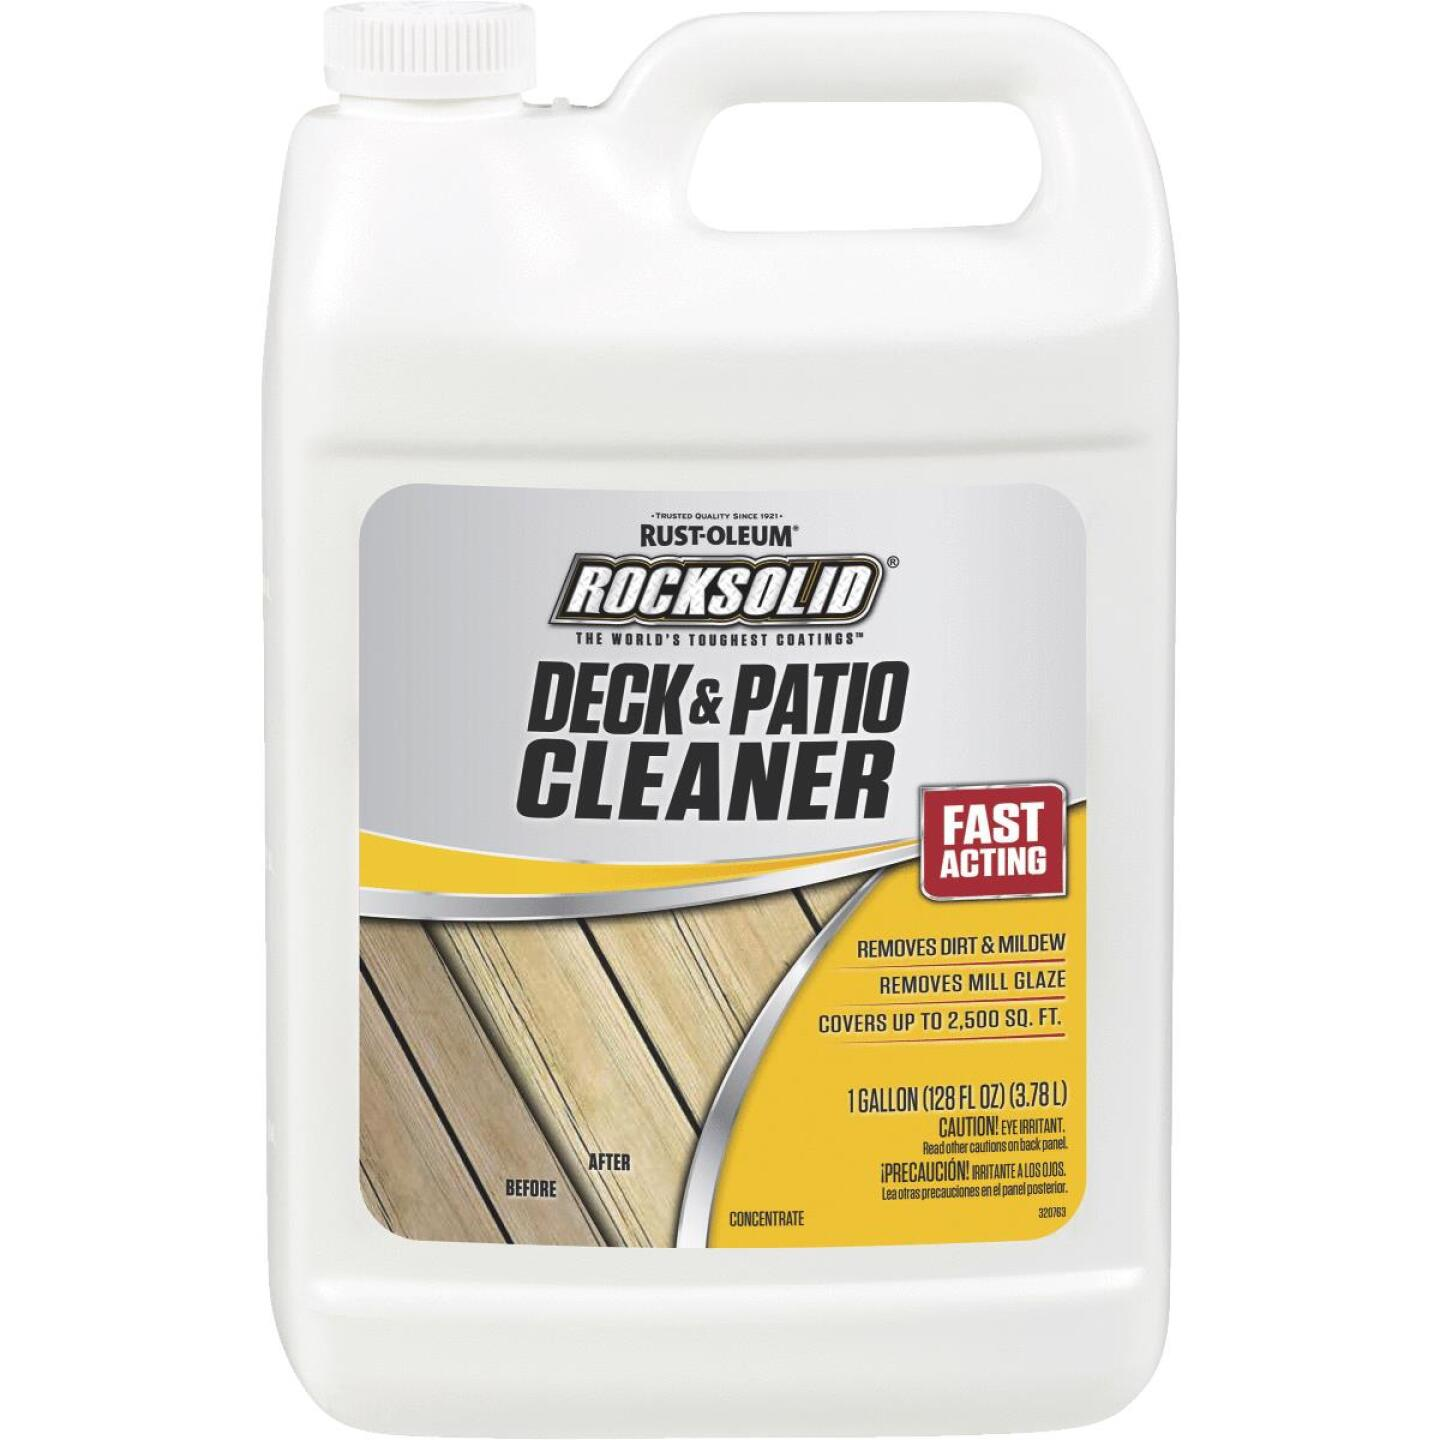 Rust-Oleum RockSolid 1 Gal. Deck & Patio Cleaner Concentrate Image 1